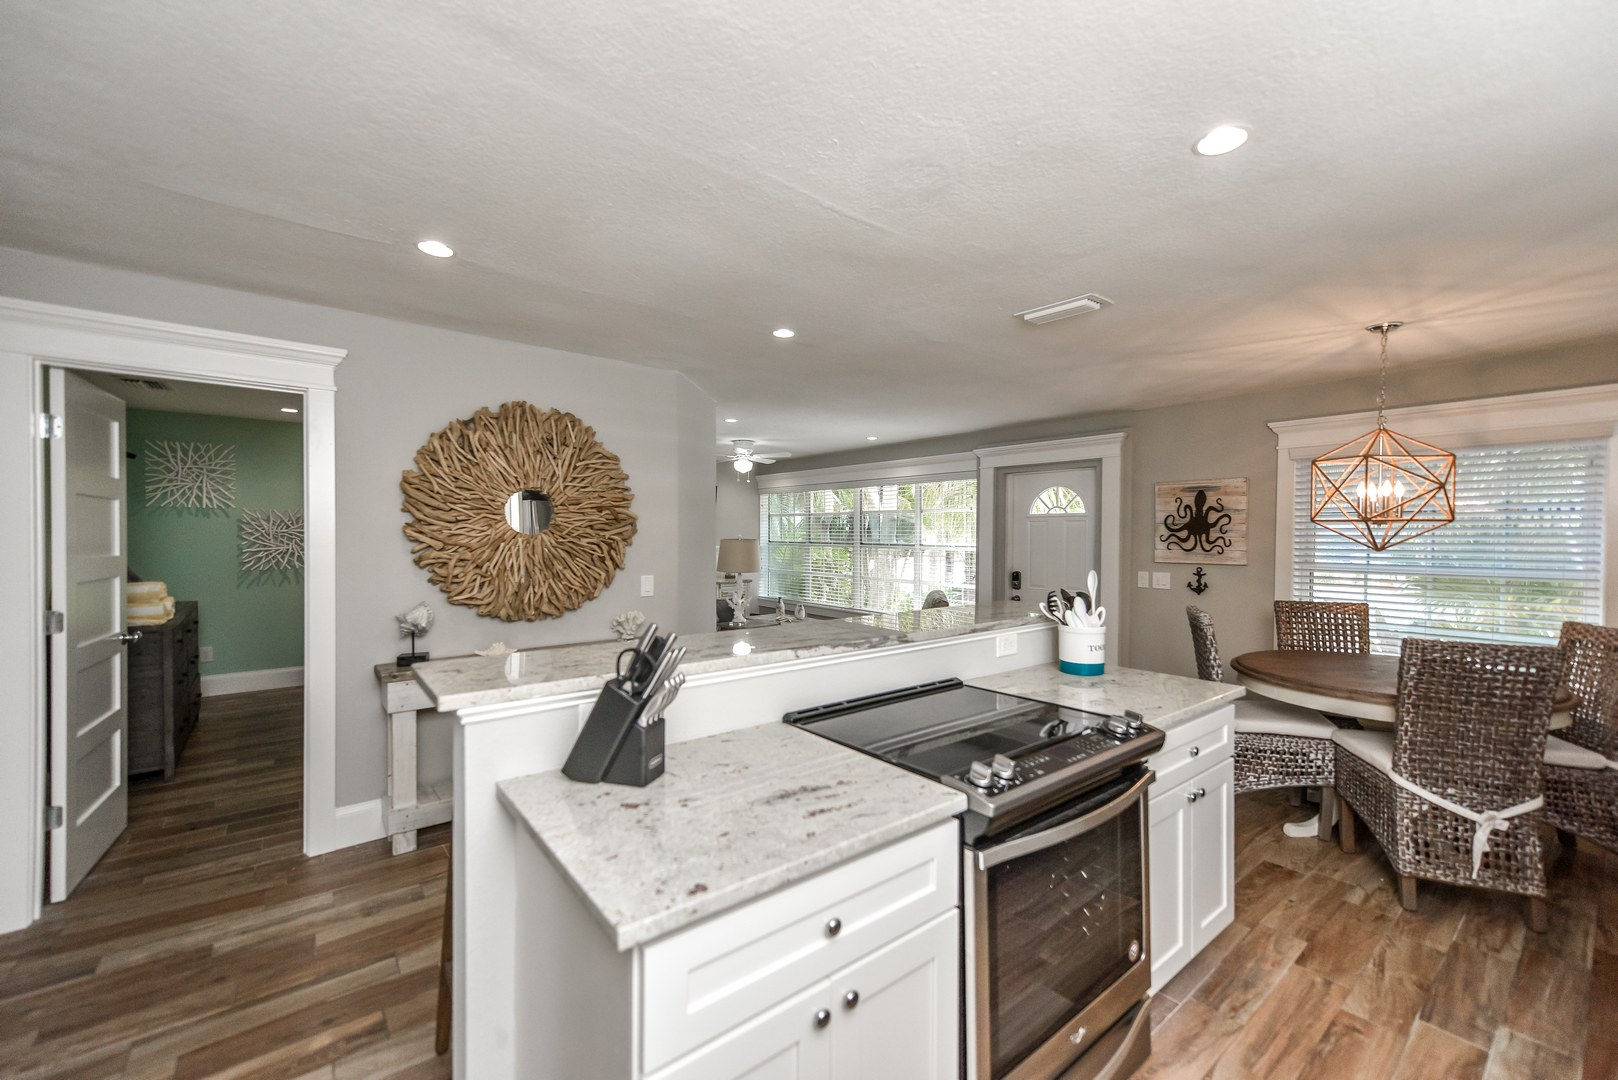 Great Room Style Room - Kitchen, Dining, Living